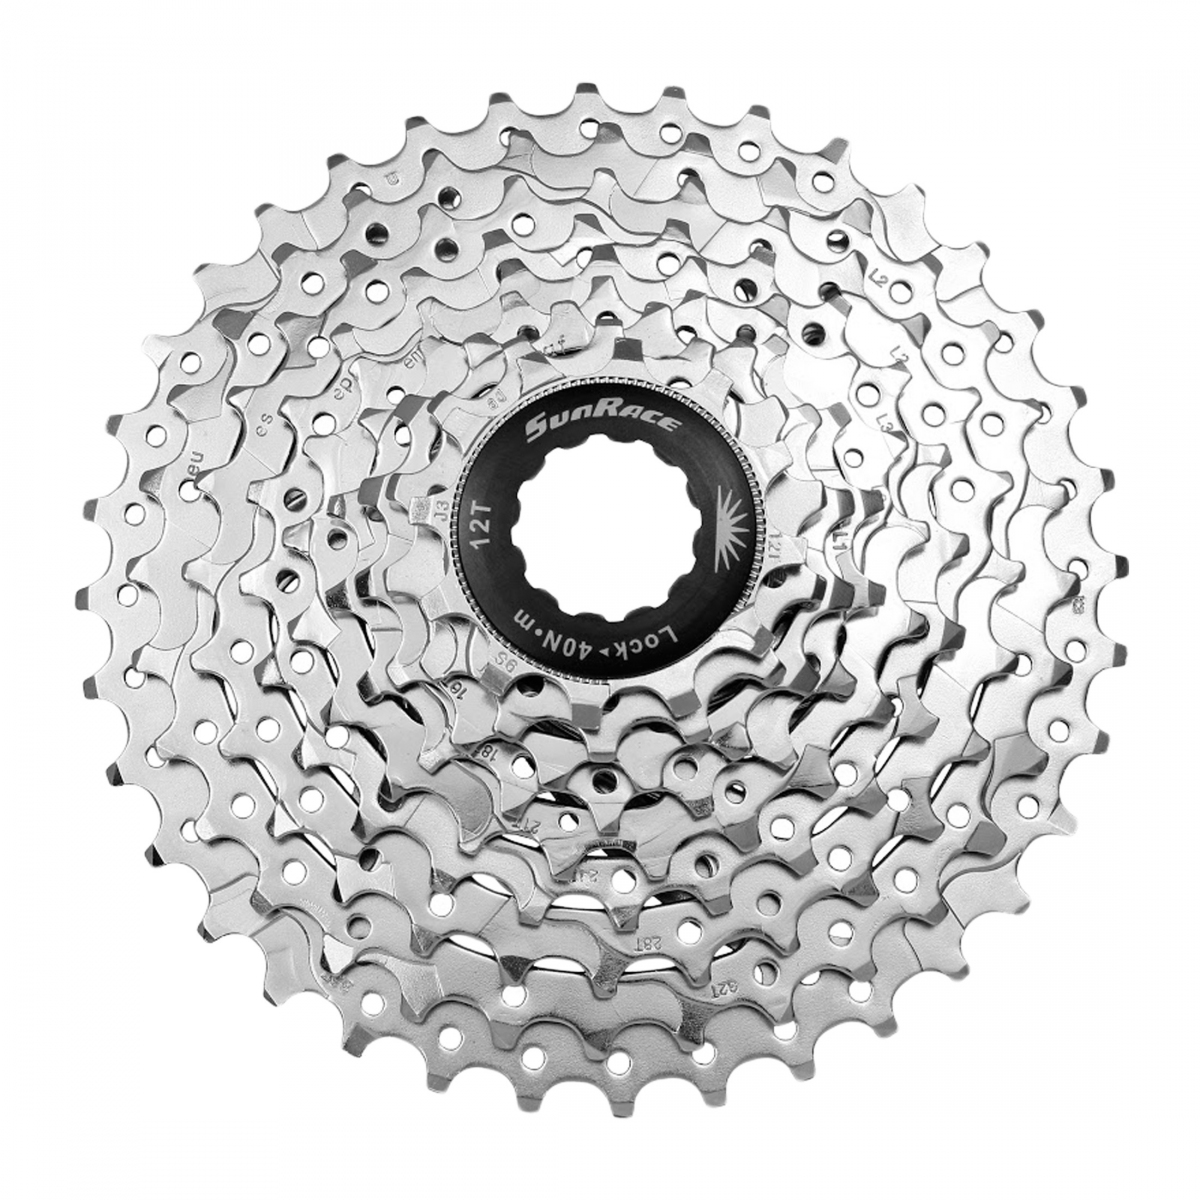 Search Results Sproket 8 Speed Shimano Hg 31 11 34t Cs M98 Cassette